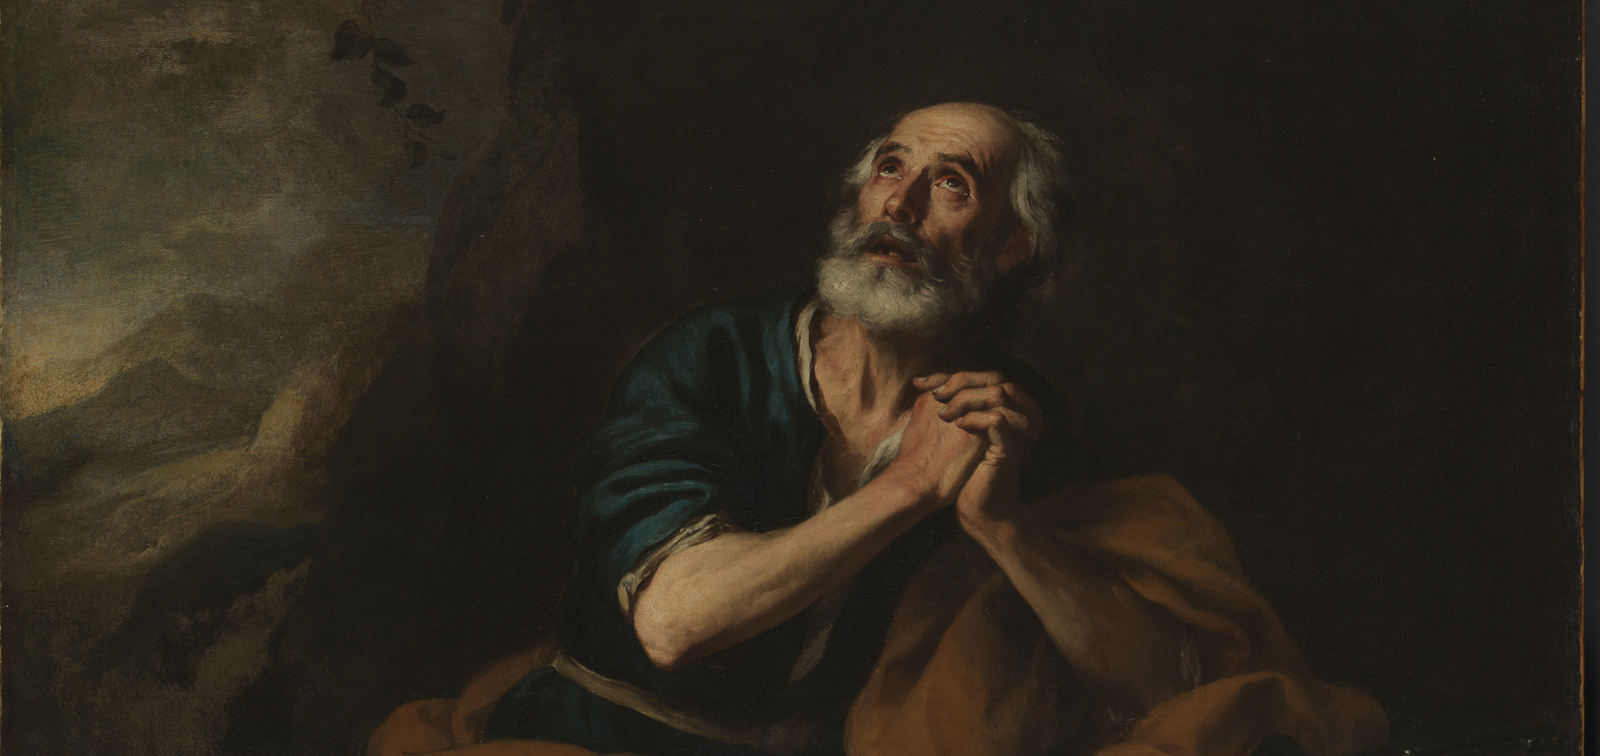 The Penitent St Peter of Los Venerables